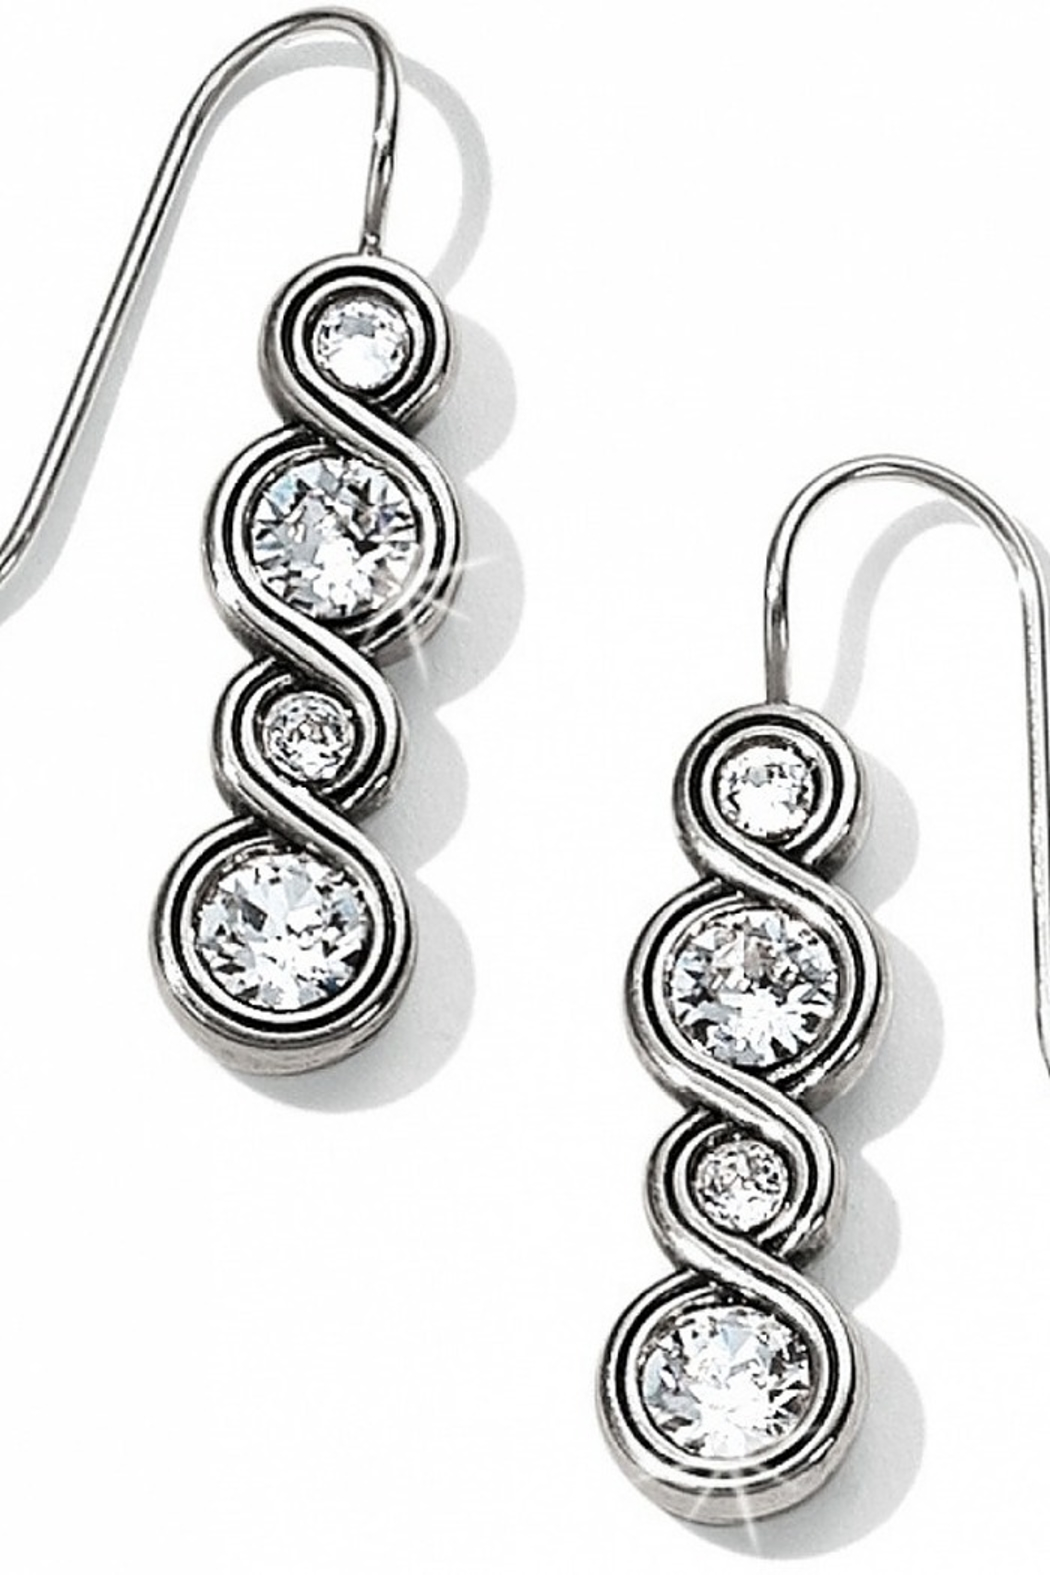 Brighton Infinity Sparkle French Wire Earrings JA1831 1136 - Main Image